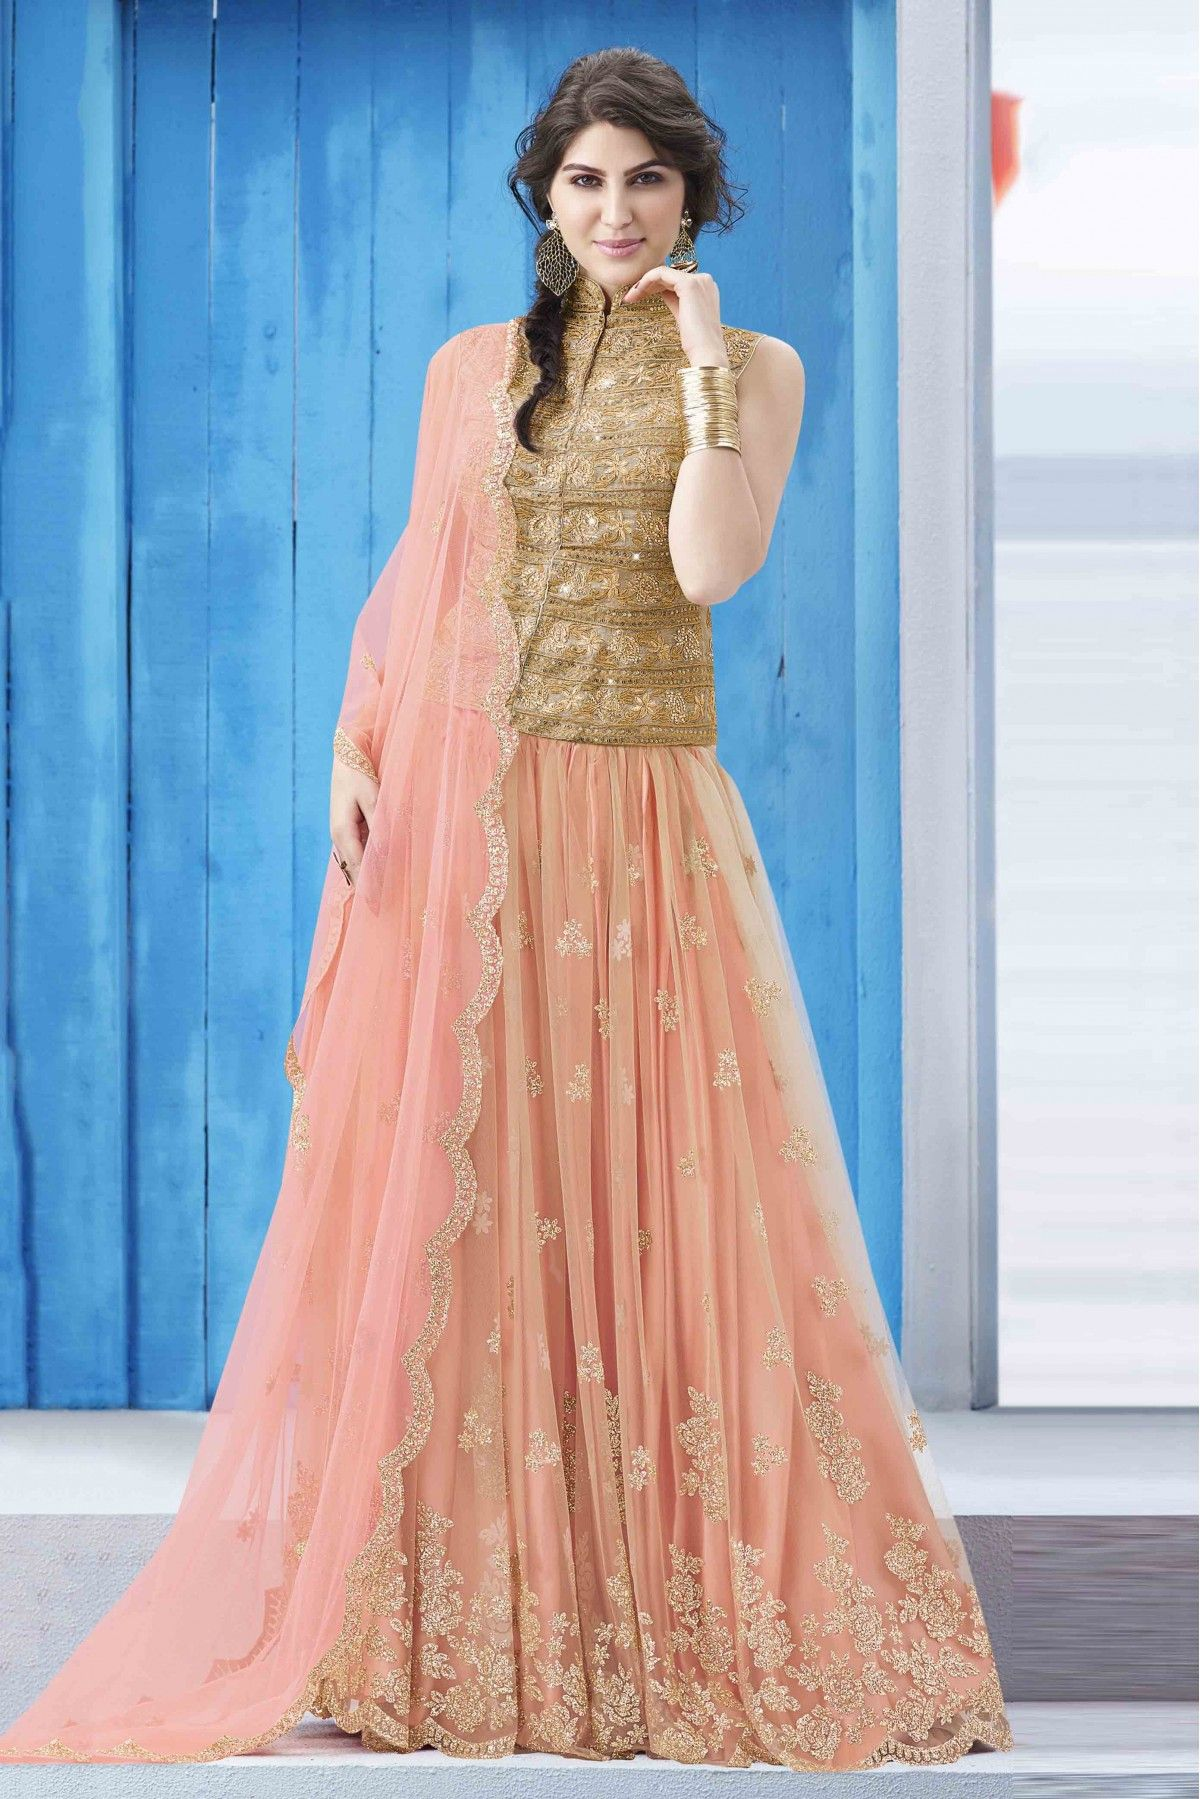 643d31d80a3 Peach Colour Net Fabric Party Wear Lehenga Comes With Matching Zari Kota  Fabric Blouse. This Lehenga Is Crafted With Stone Work